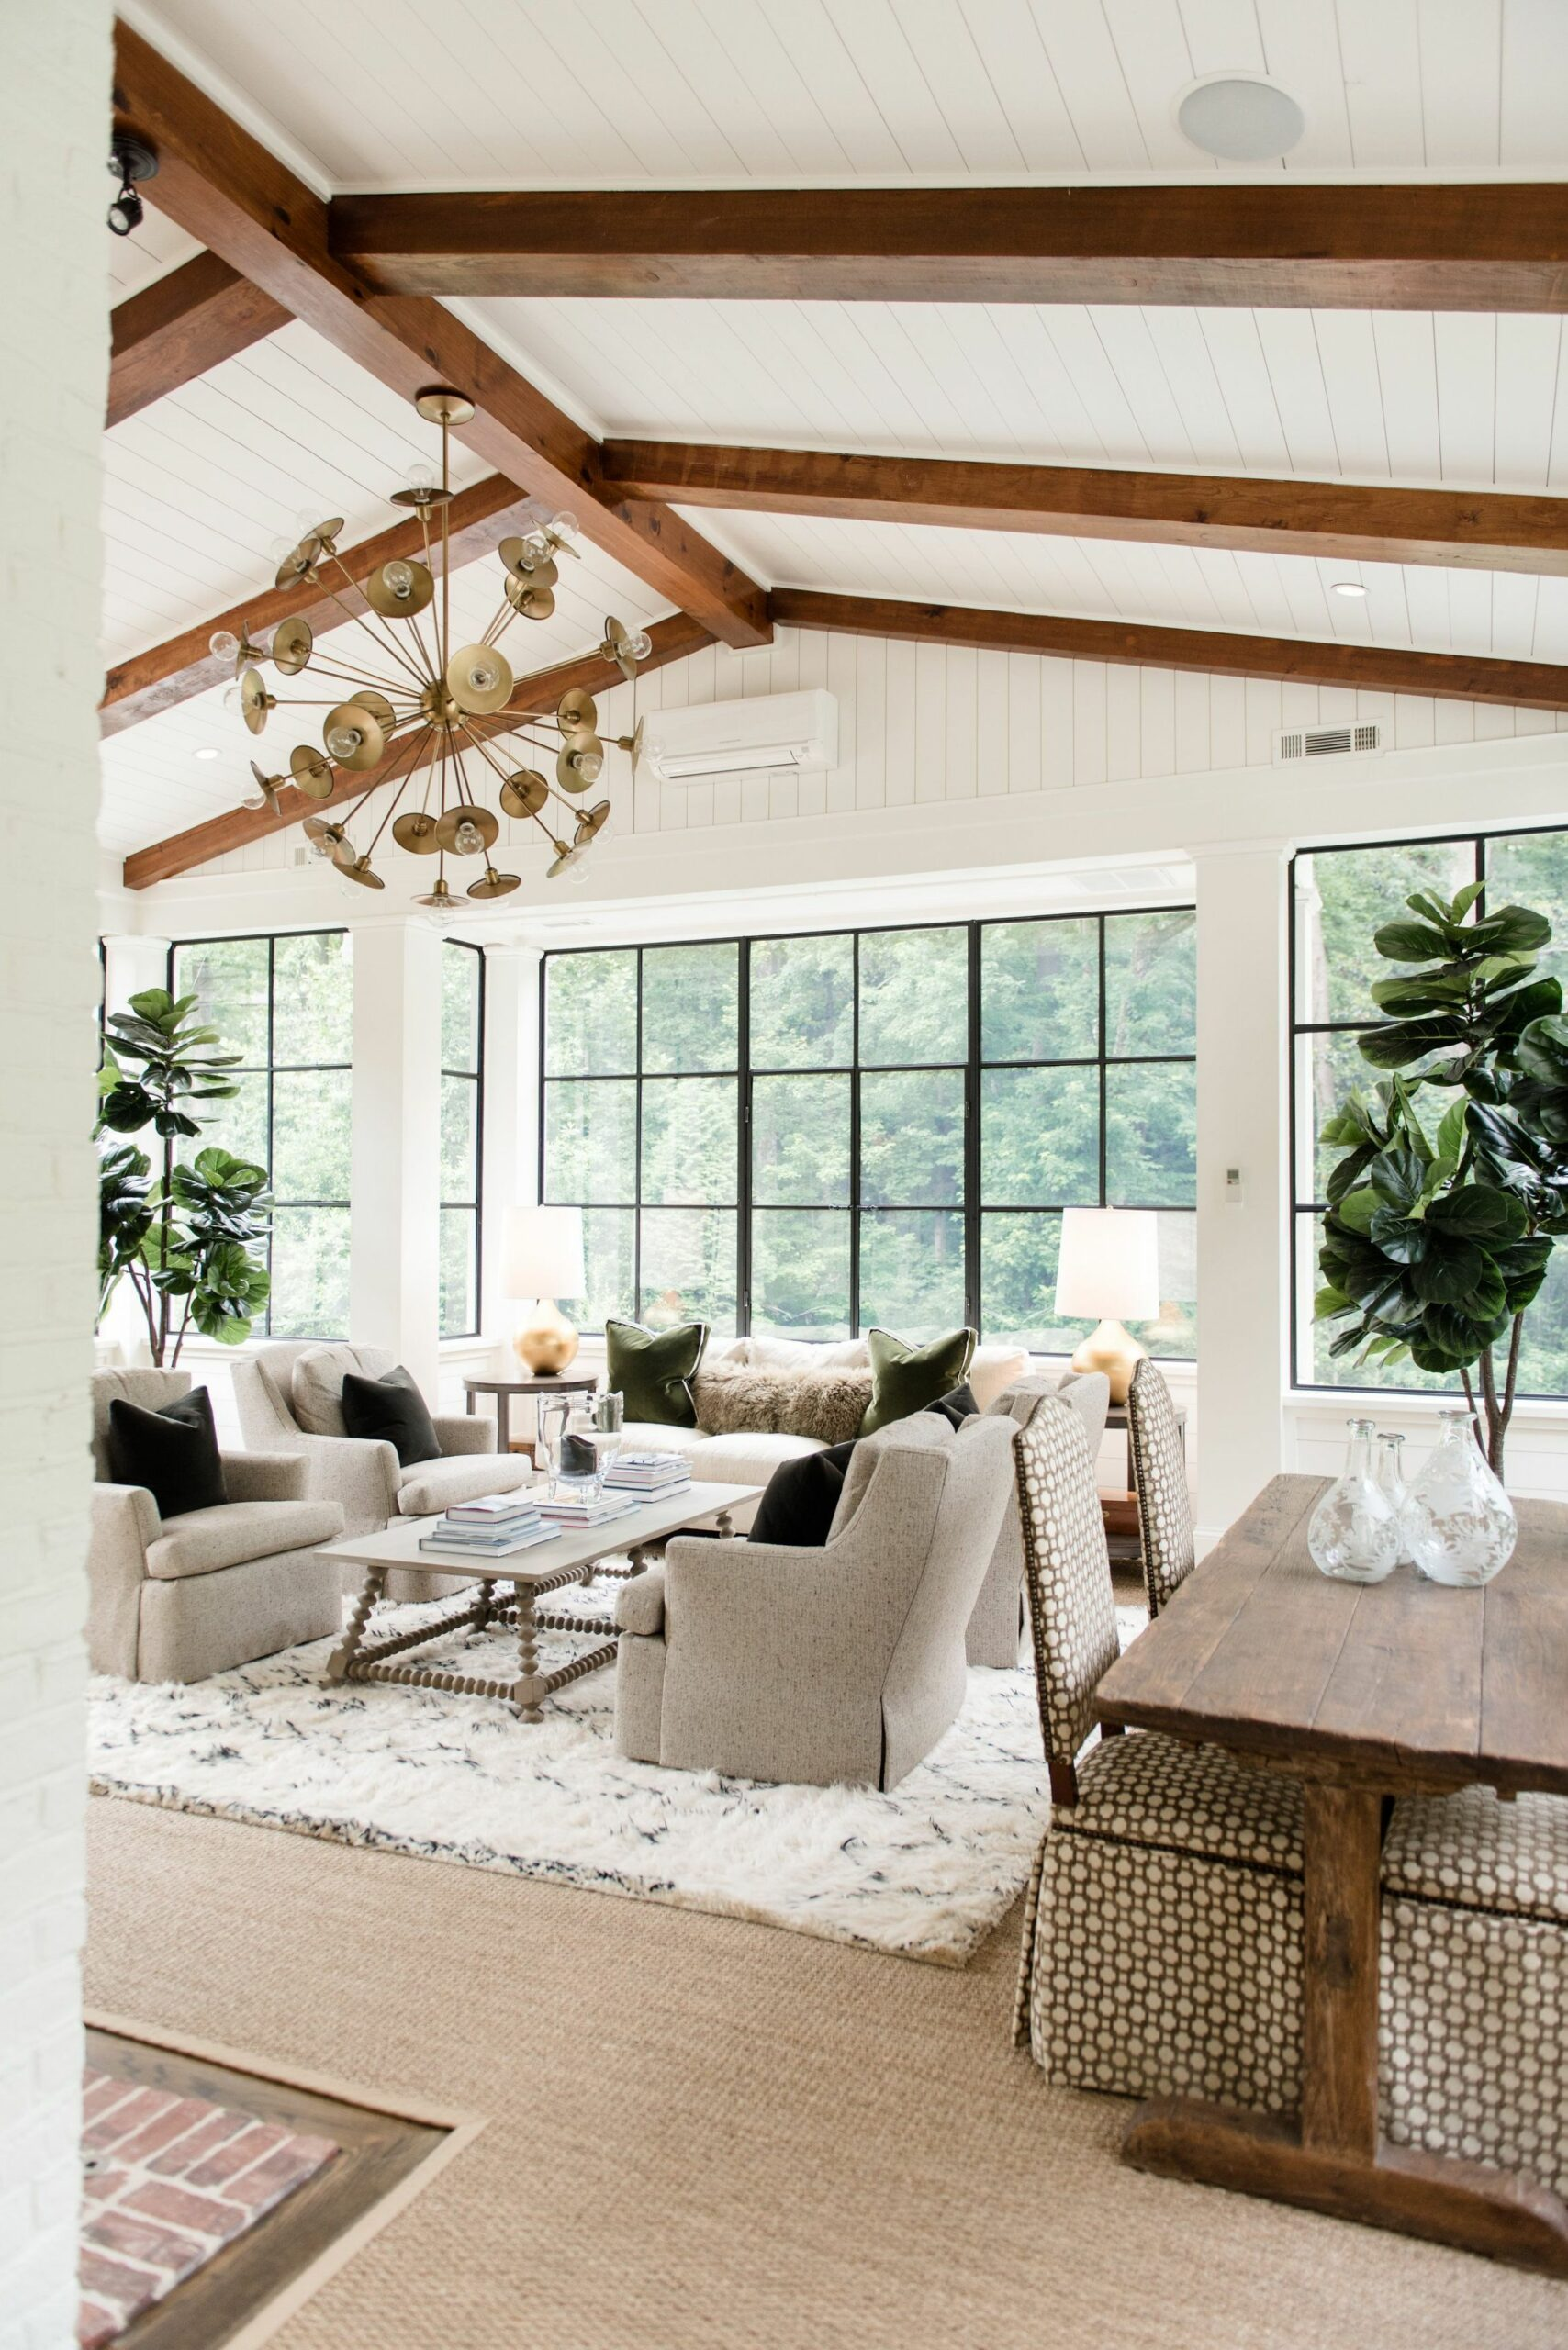 10+ Best Sunroom Ideas for a Year-Round (Totally Groundbreaking ...